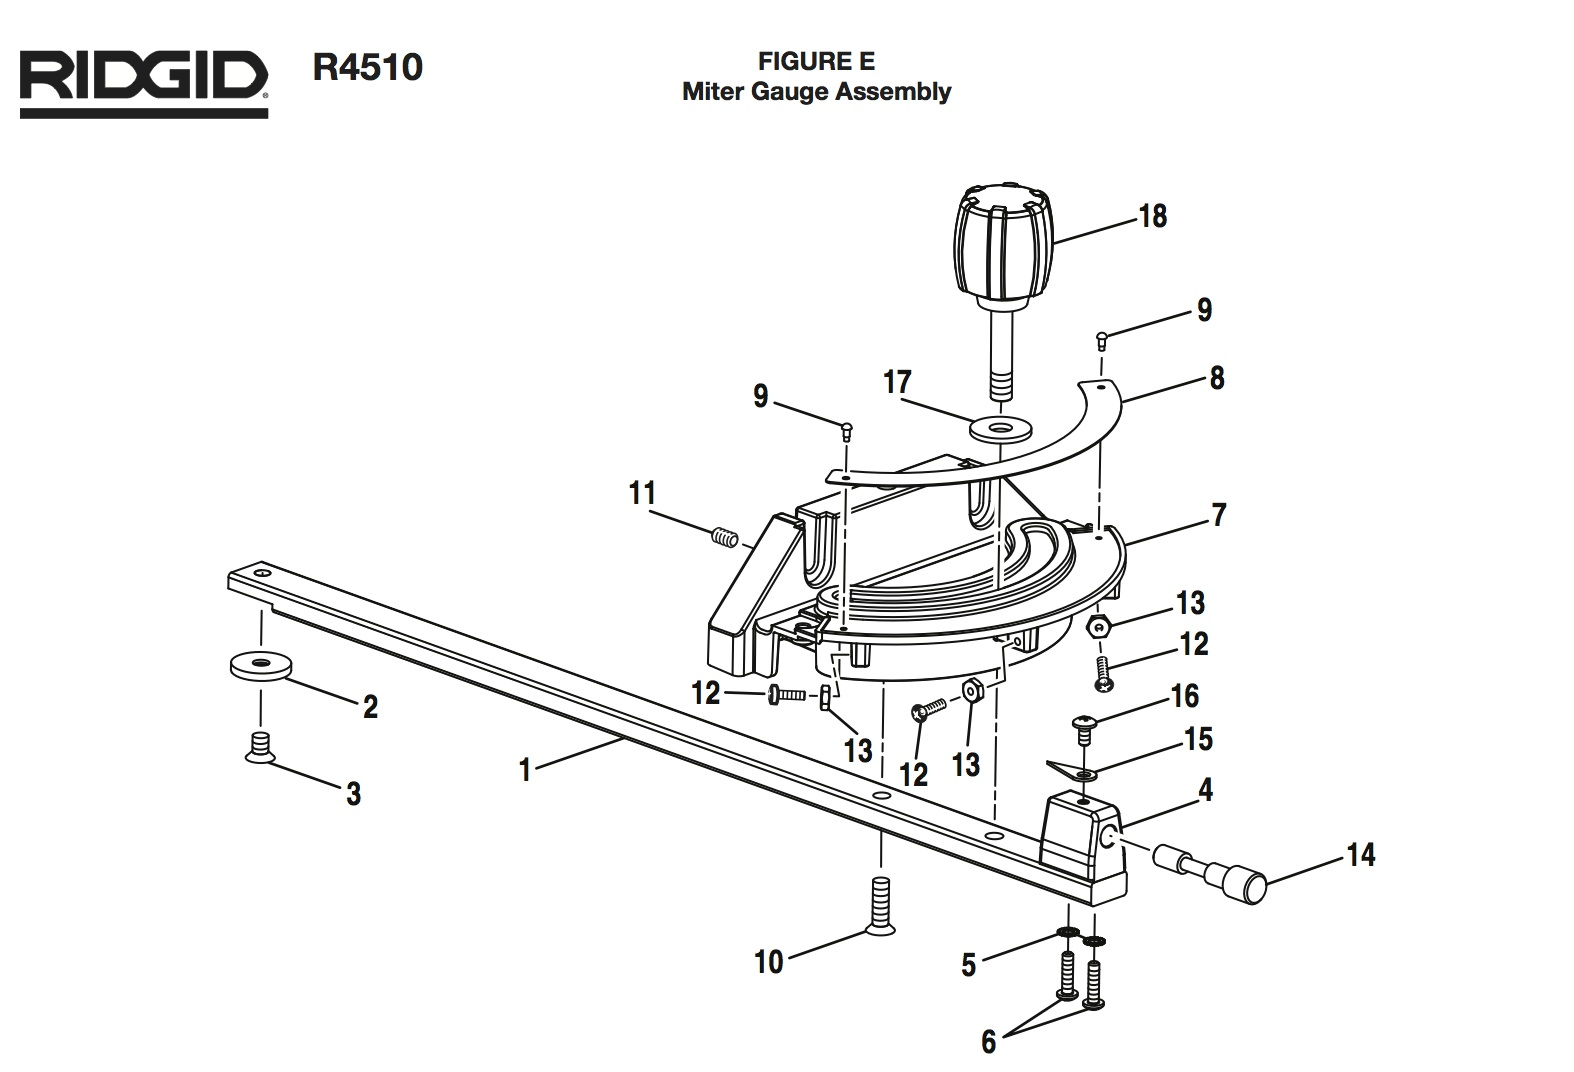 ridgid right angle drill r7130 wiring diagram   45 wiring